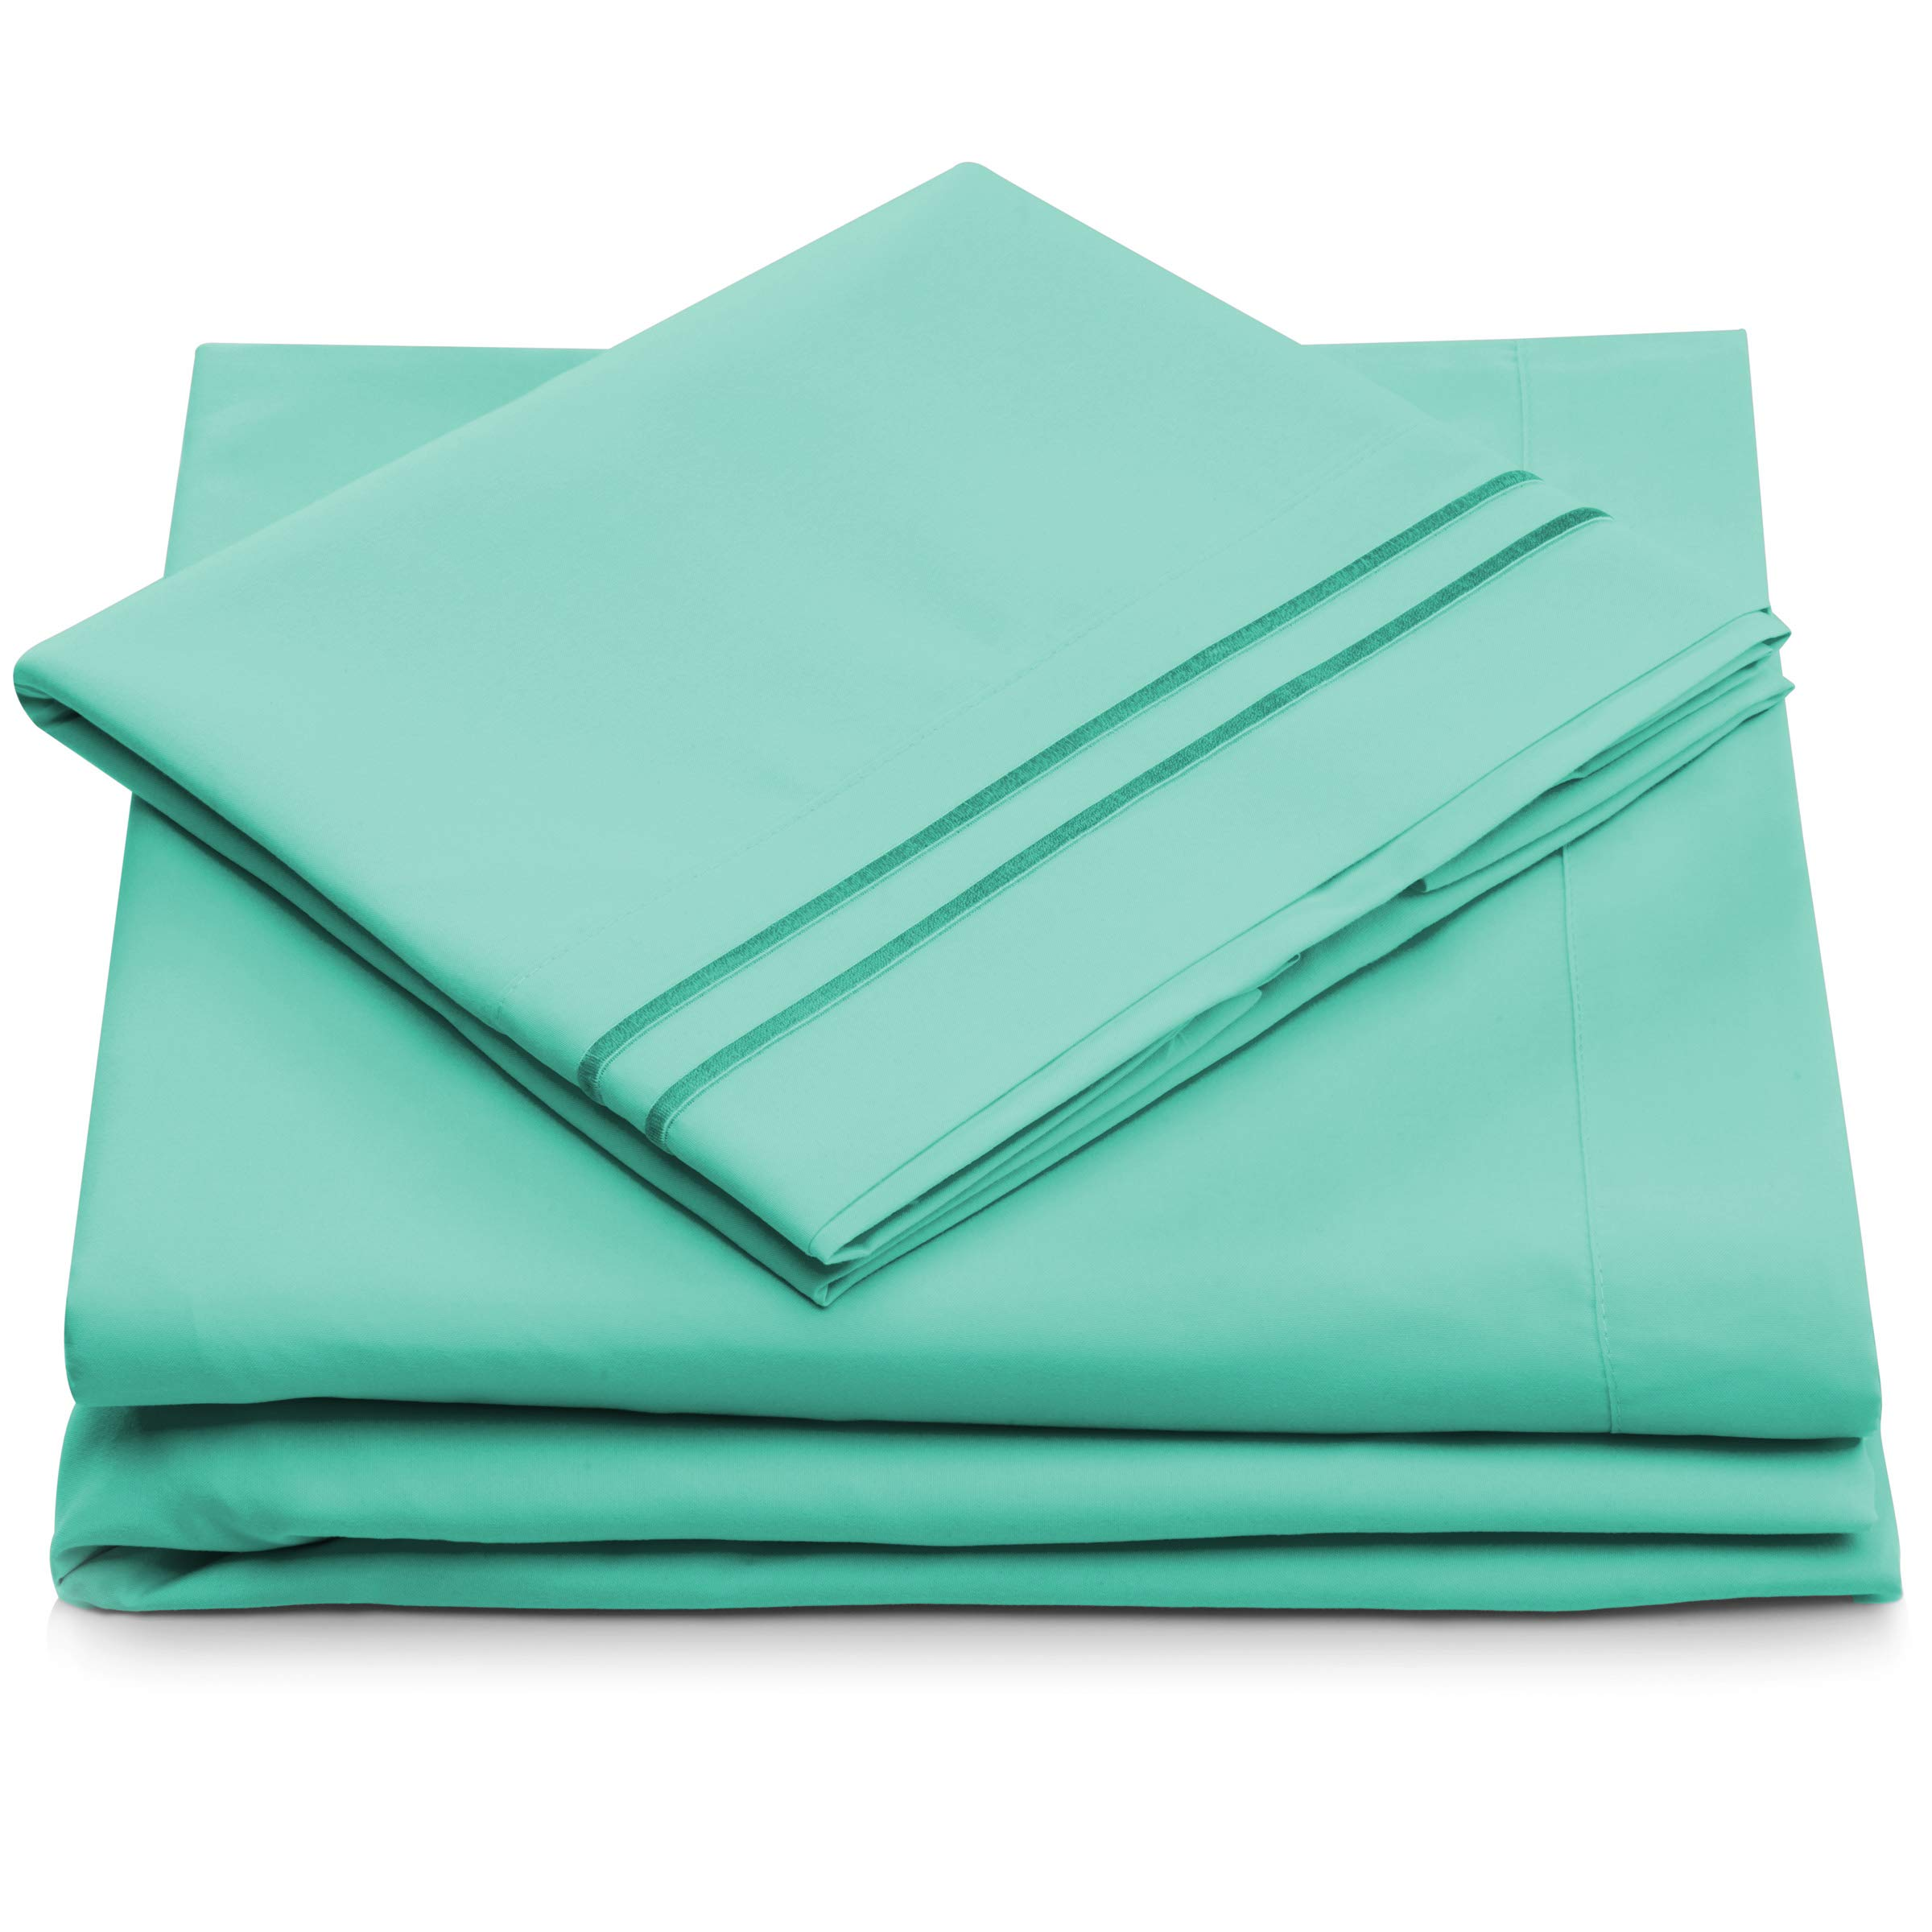 Queen Size Bed Sheets - Pastel Green Luxury Sheet Set - Deep Pocket - Super Soft Hotel Bedding - Cool & Wrinkle Free - 1 Fitted, 1 Flat, 2 Pillow Cases - Mint Queen Sheets - 4 Piece